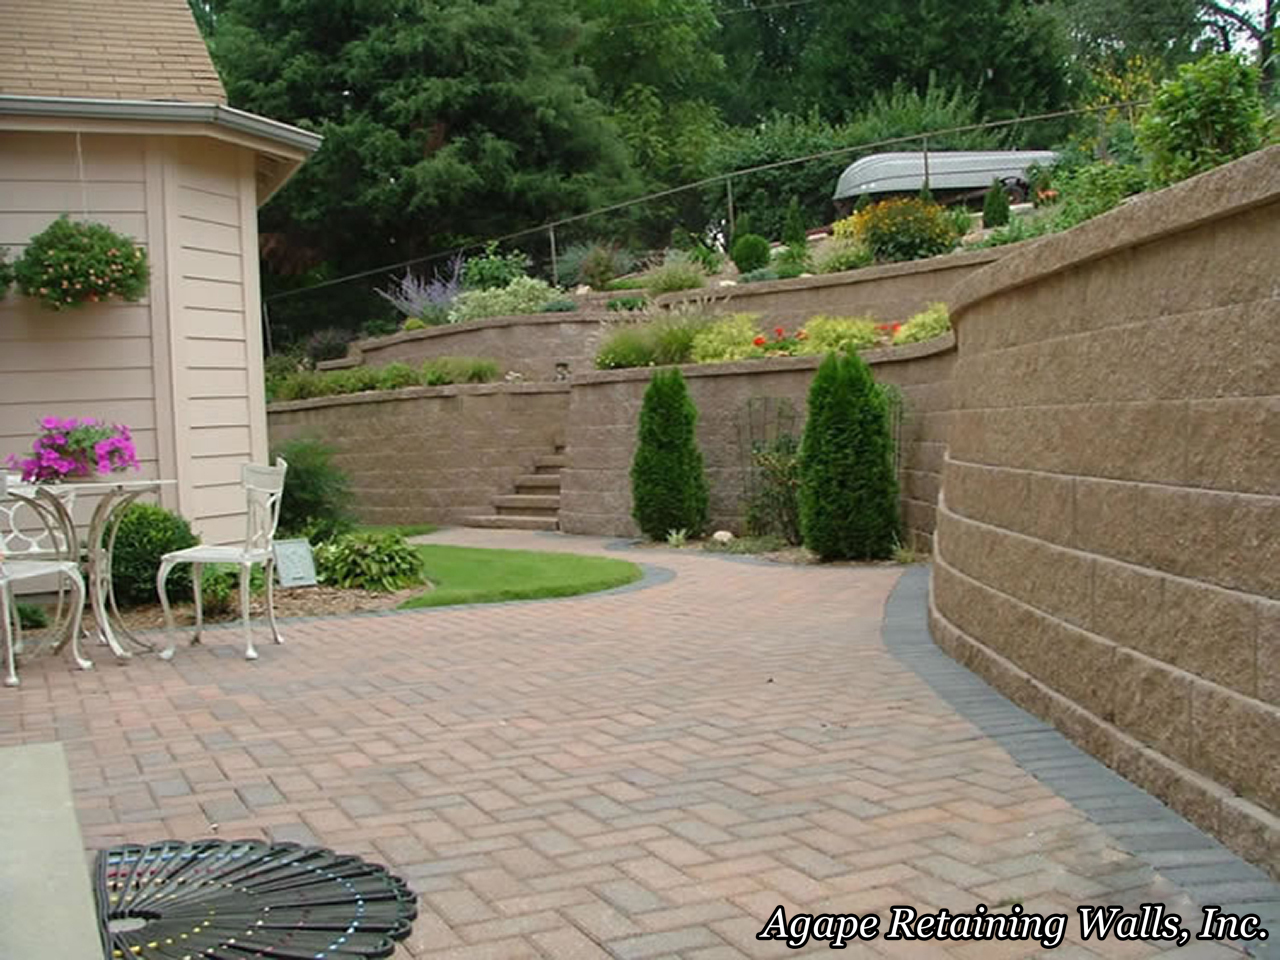 give her many years of relaxing time in her backyard garden paradise